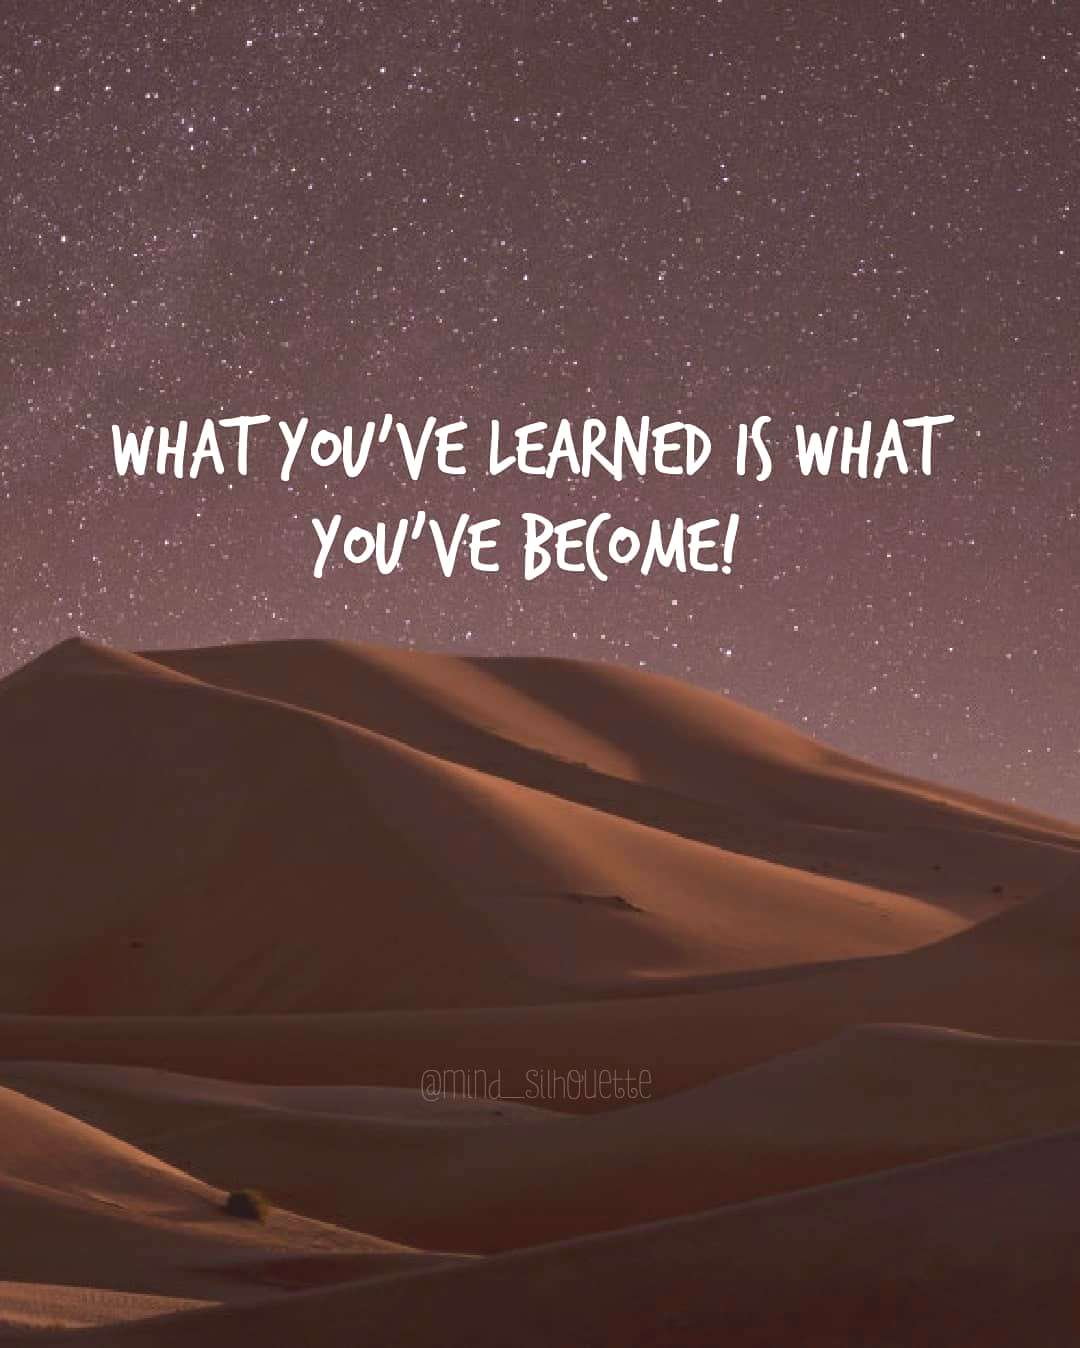 What you've learned is what you've become